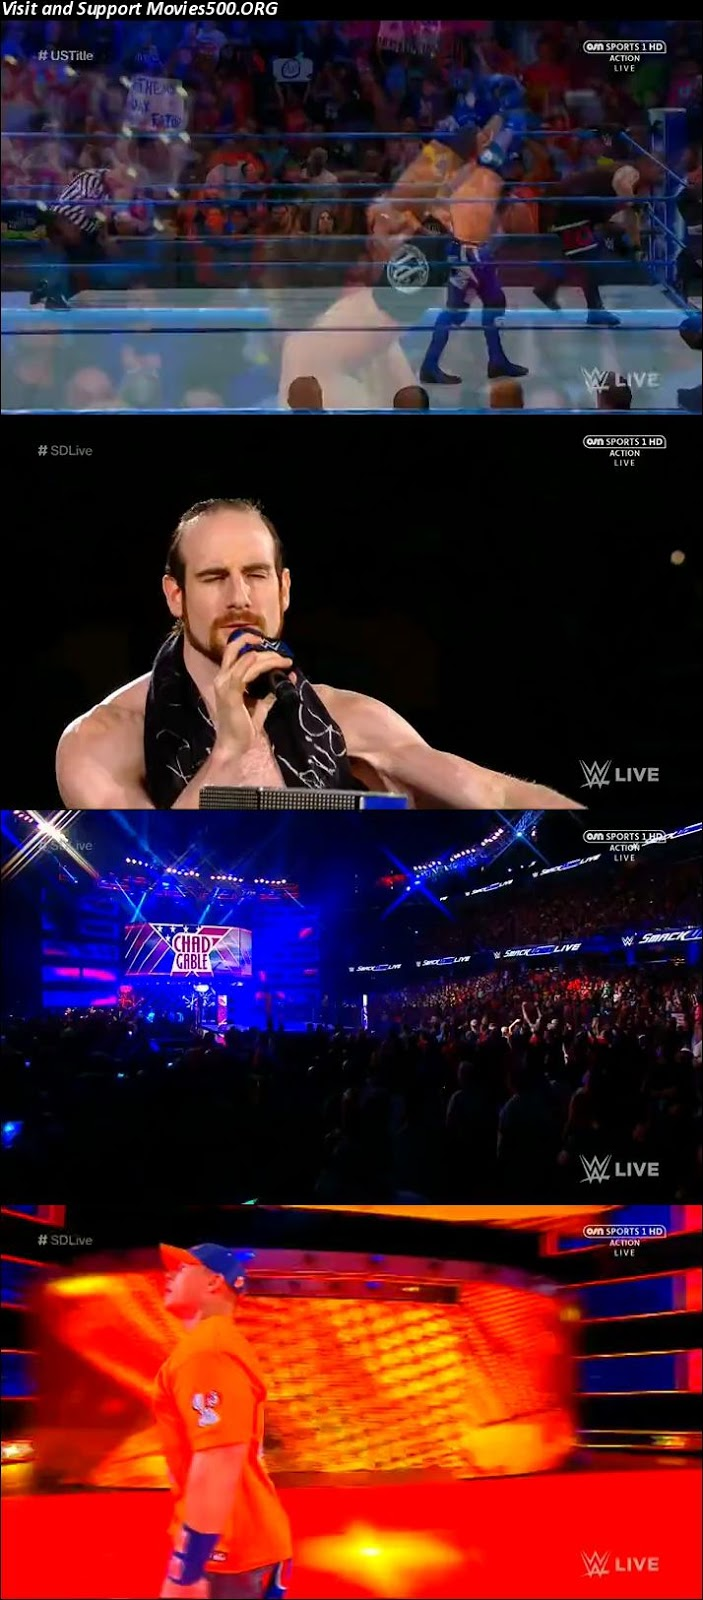 WWE Smackdown Live 01 Aug 2017 HDTV Full Show Download 720p at xcharge.net